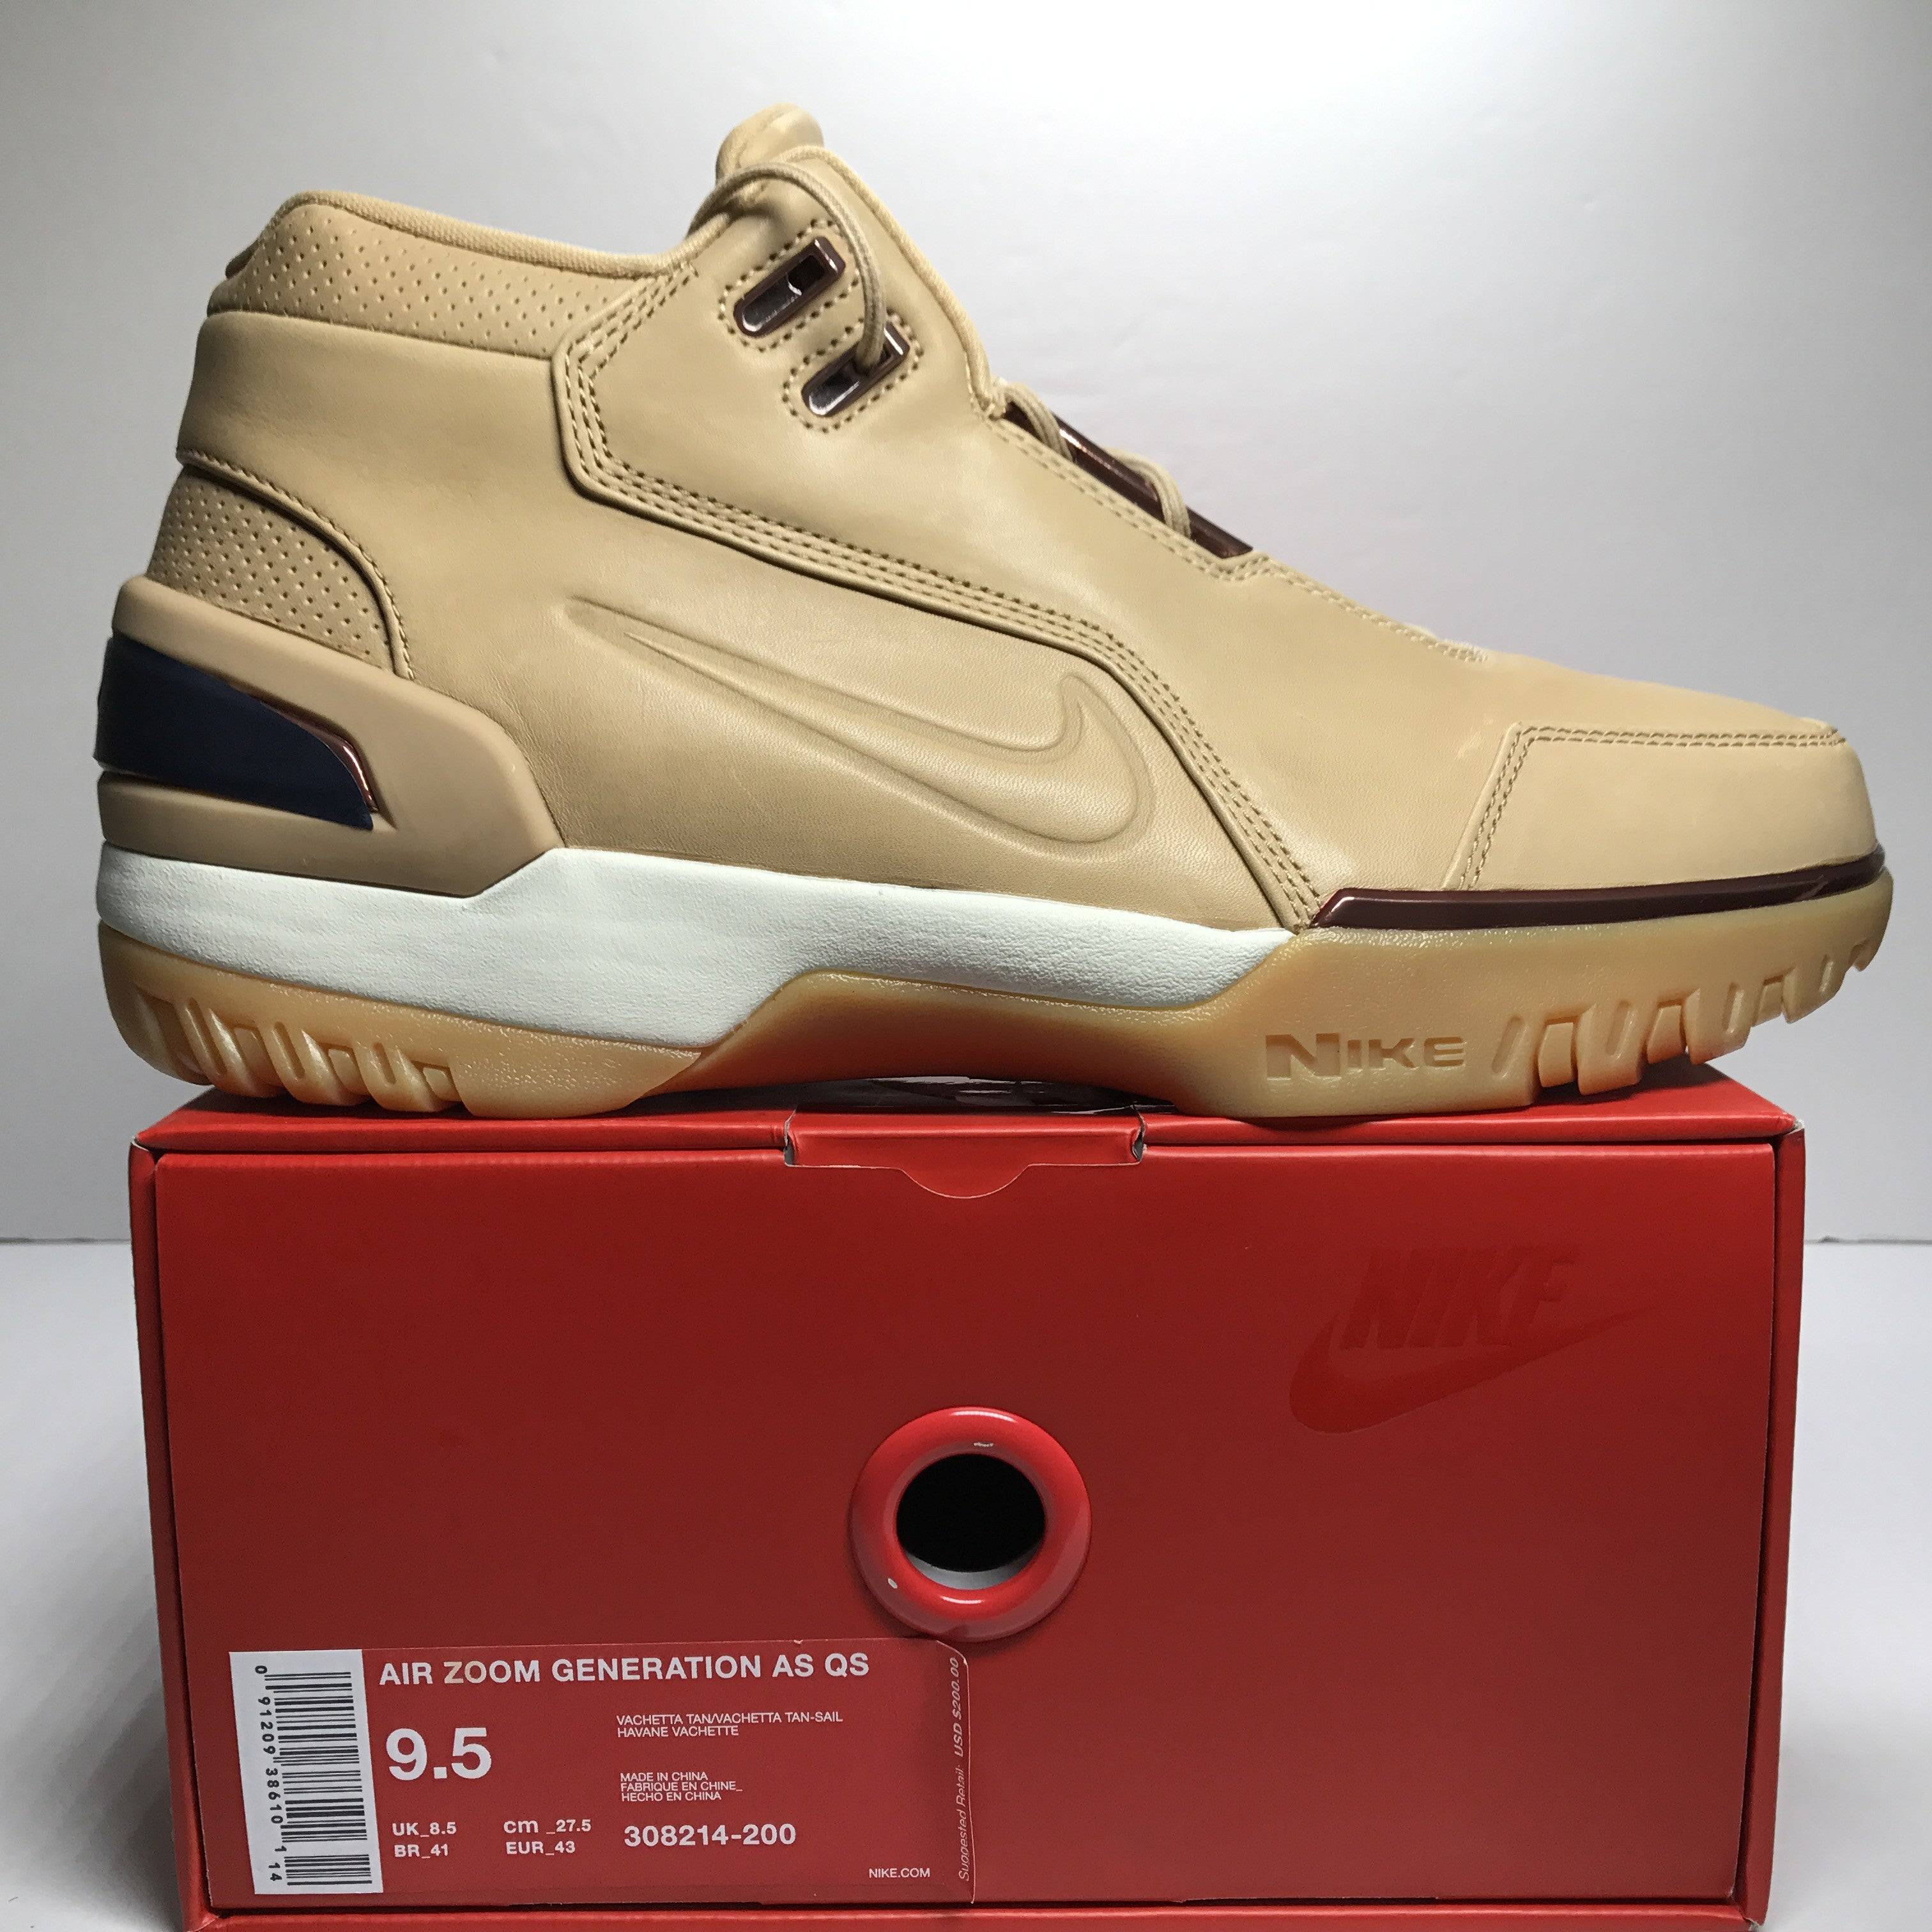 DS Nike Air Zoom Generation All Star QS Vachetta Tan Size 9.5